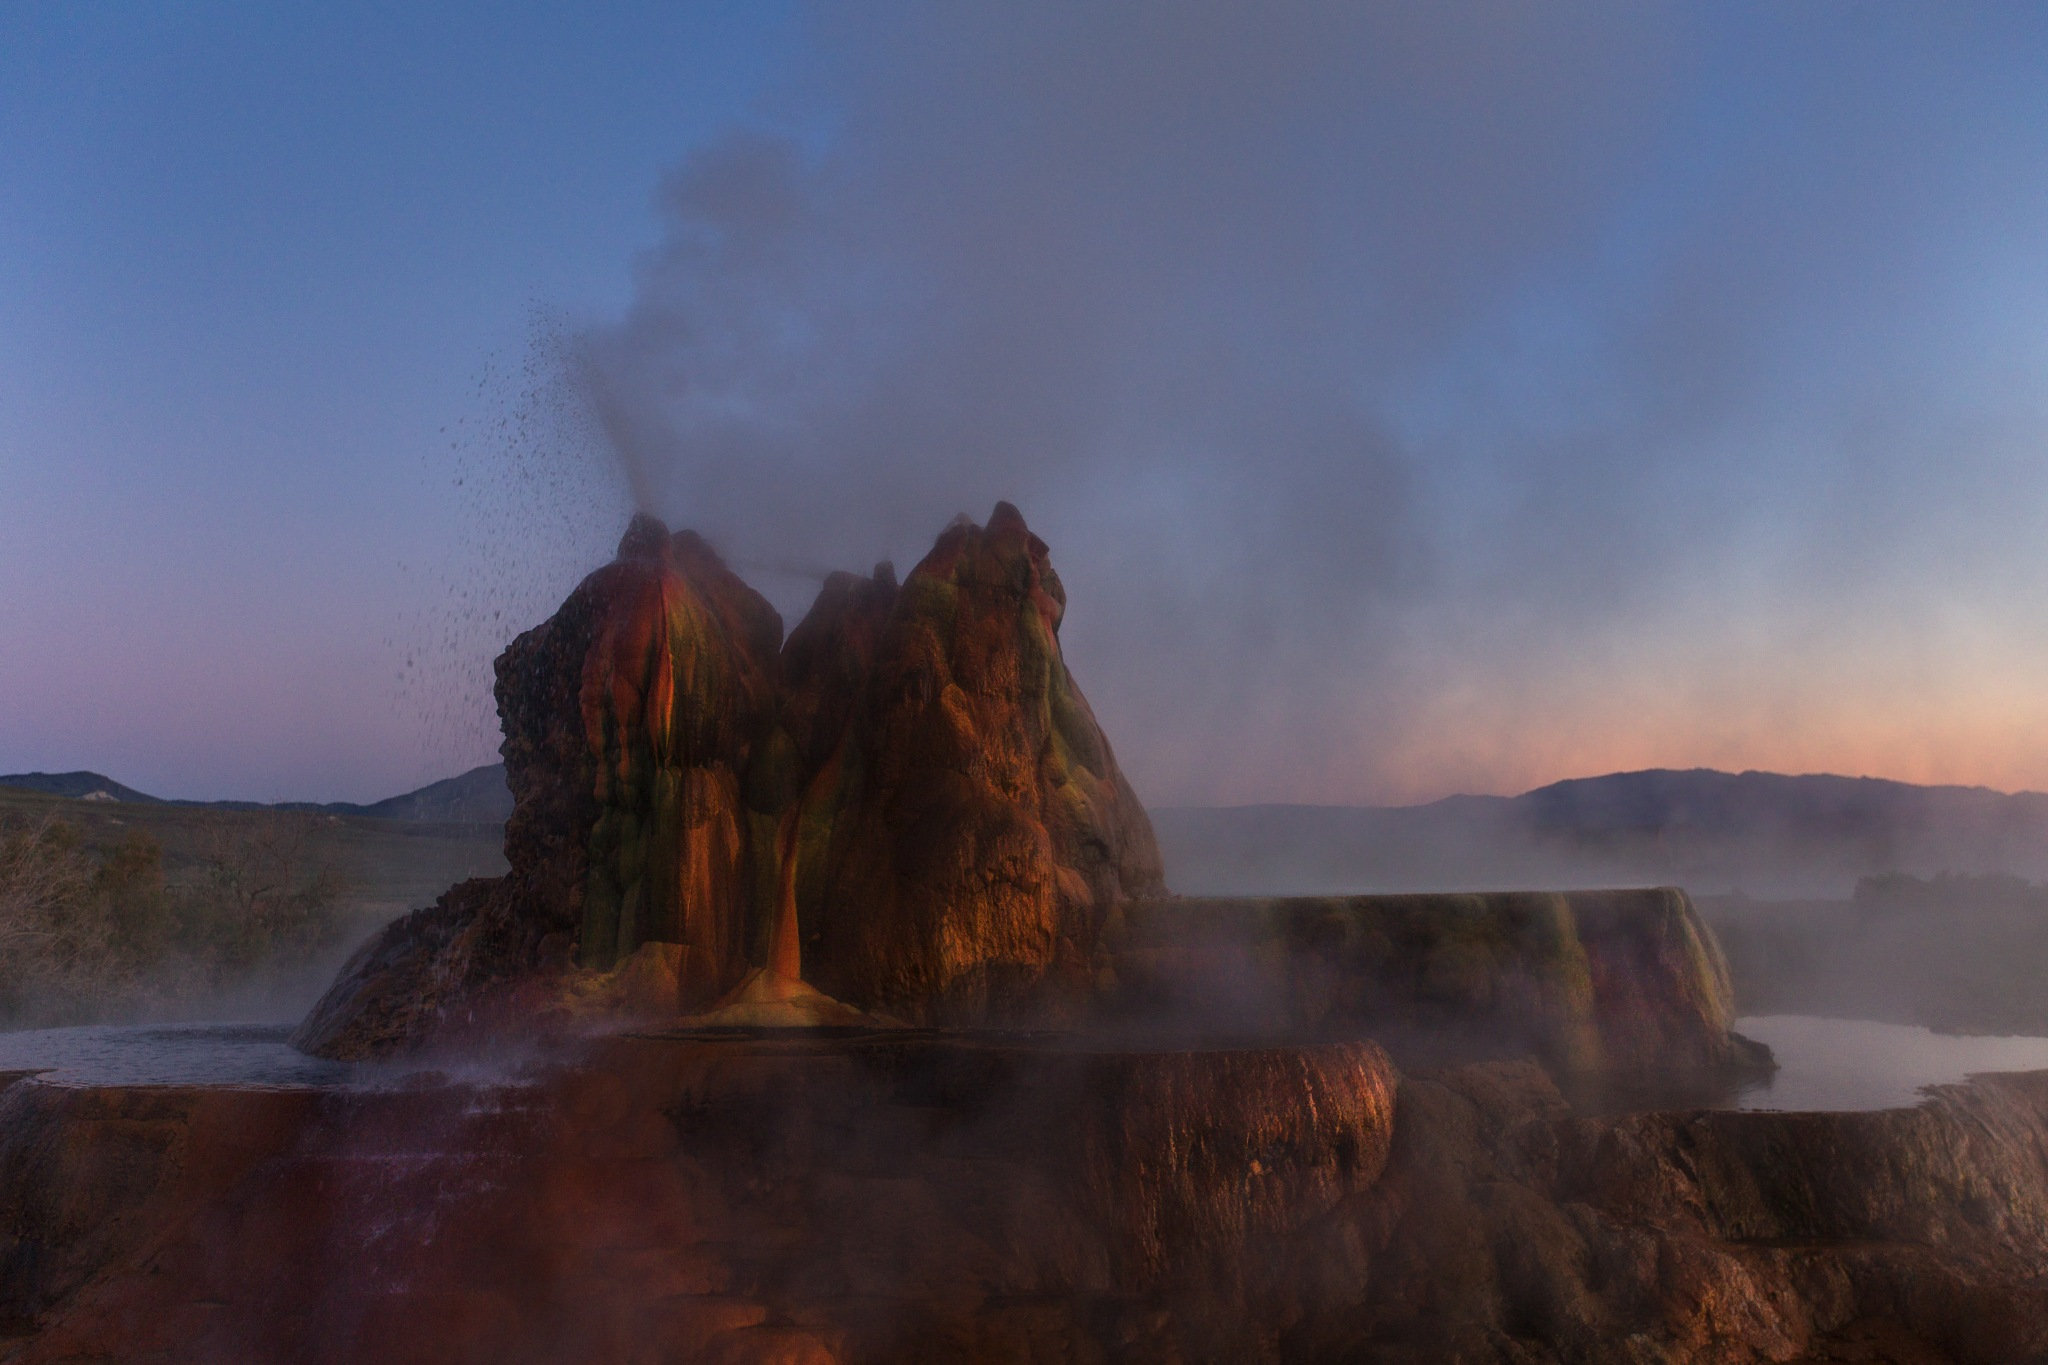 Fly Geyser 1 by Dianachang